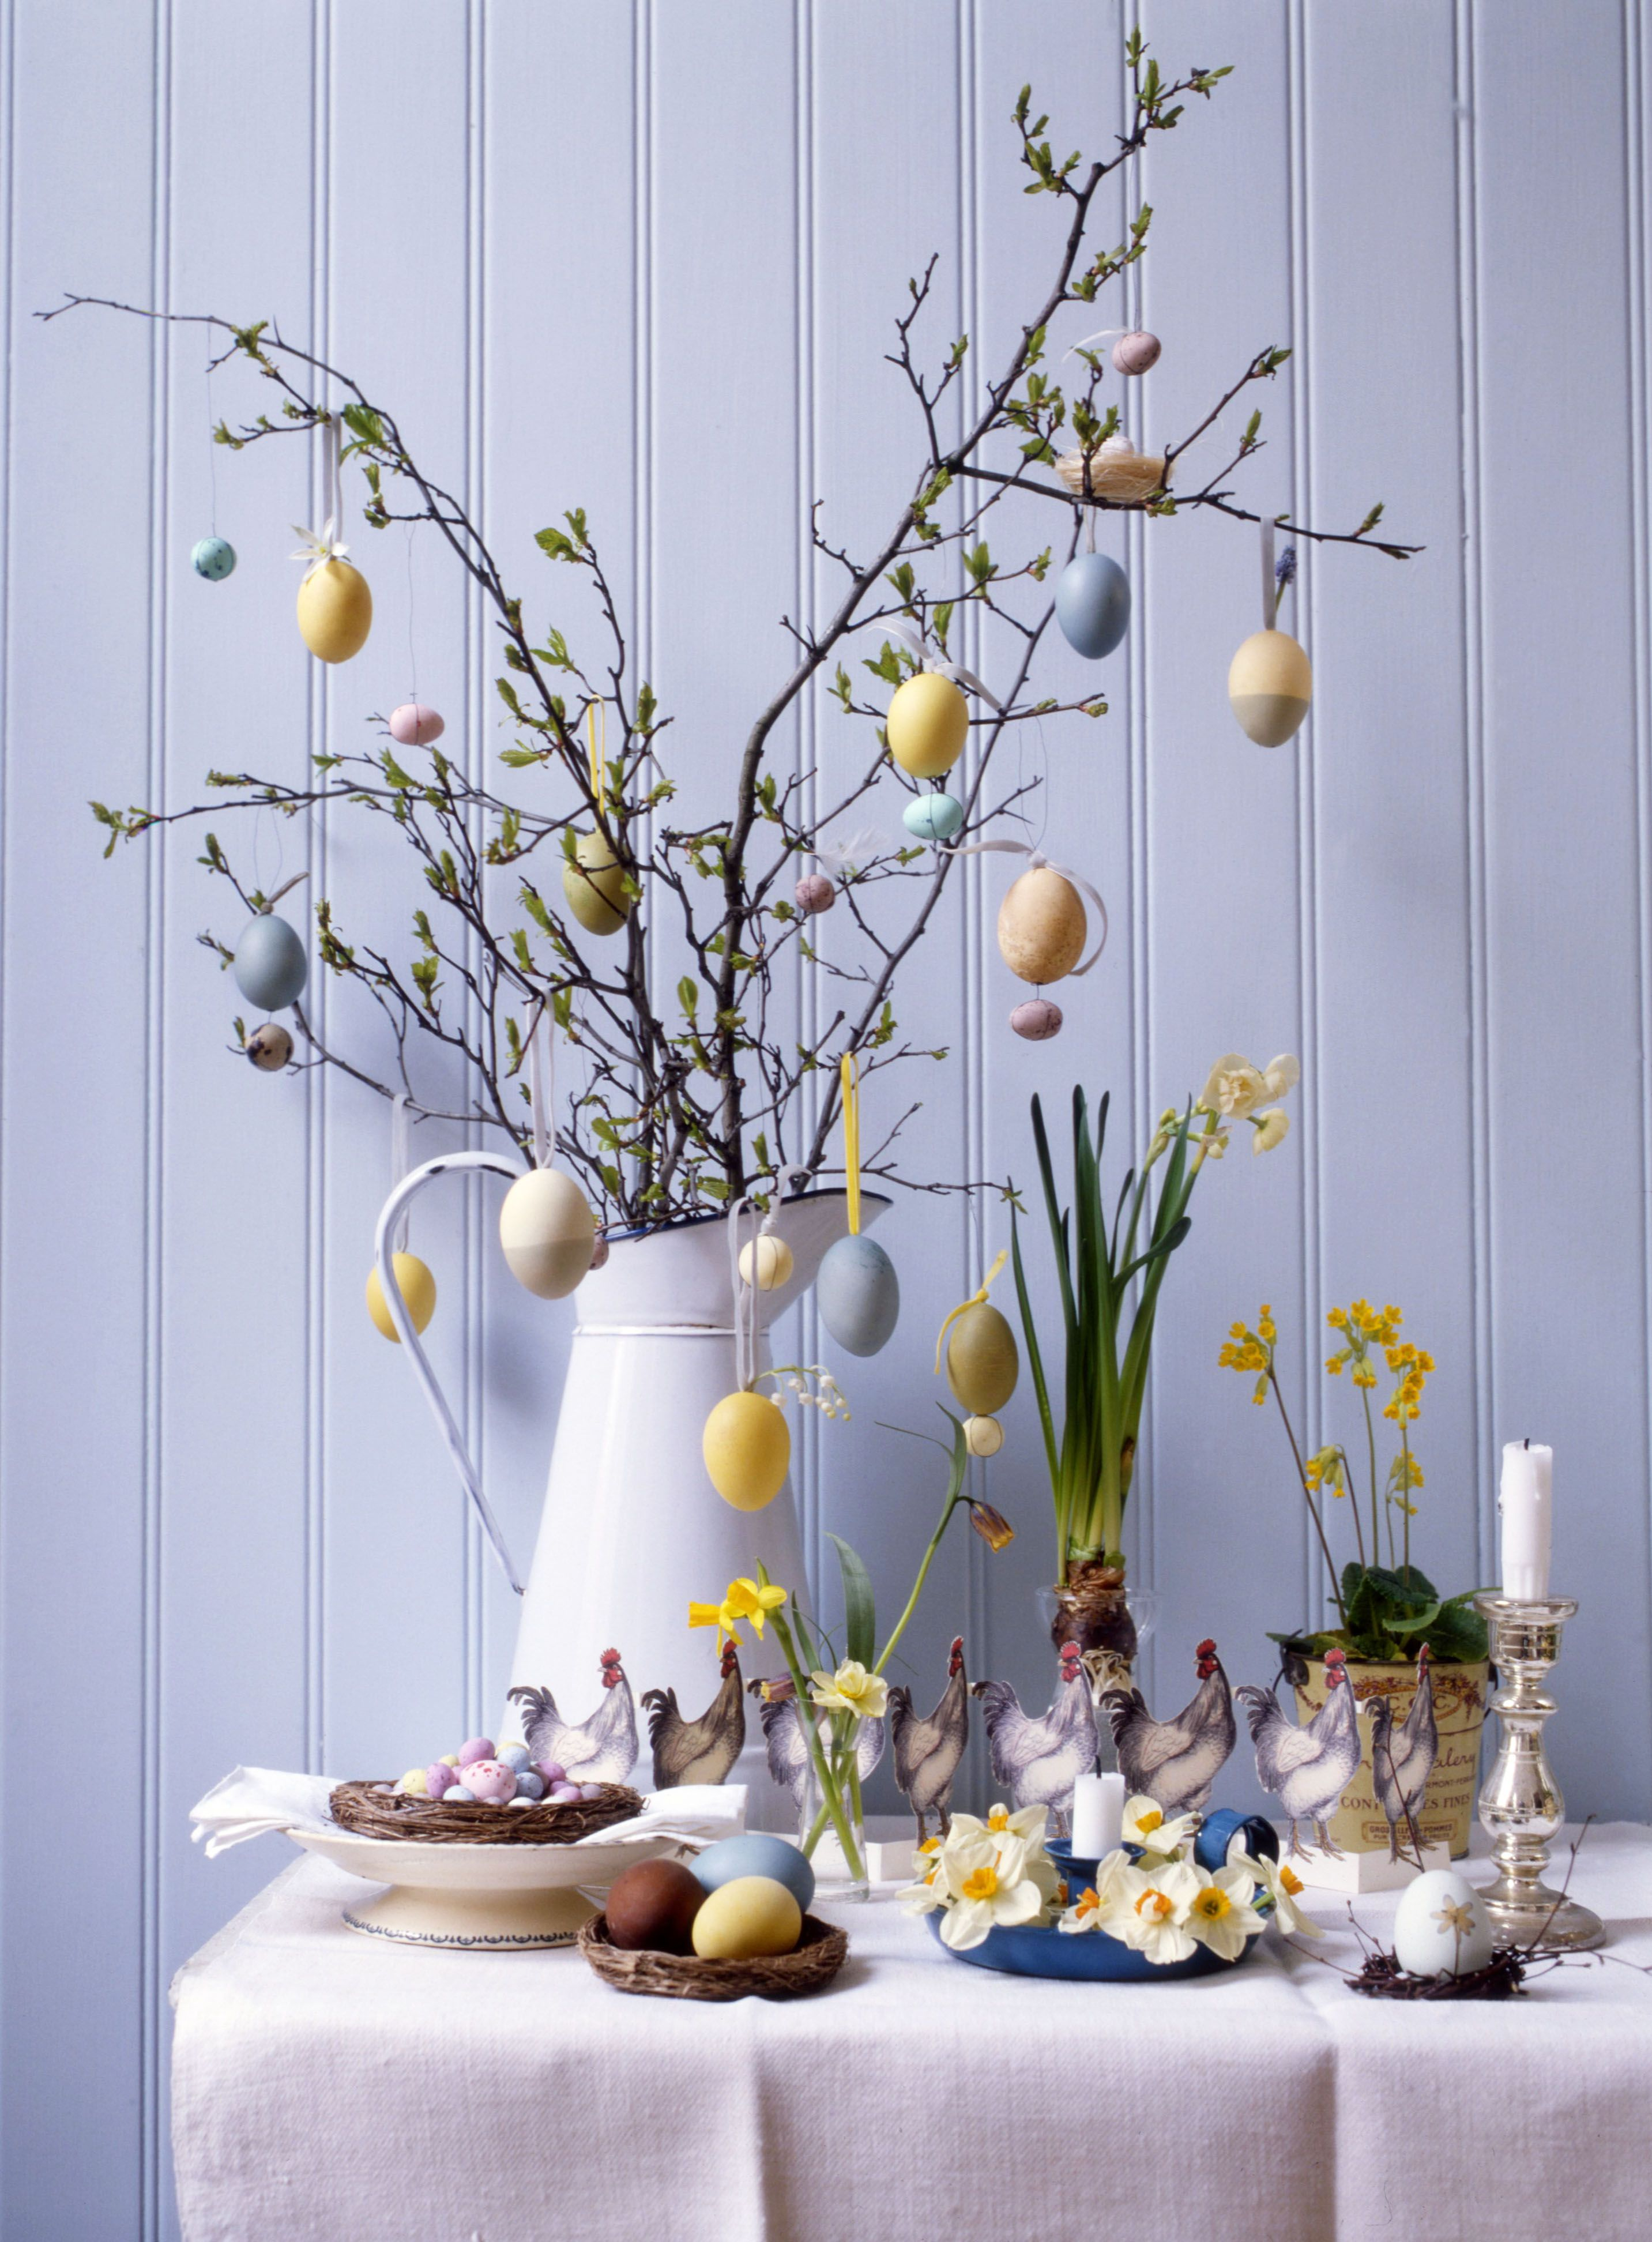 We always made an Easter tree when I was little with gorgeous patterned, miniature, chocolate eggs threaded and hung from the branches